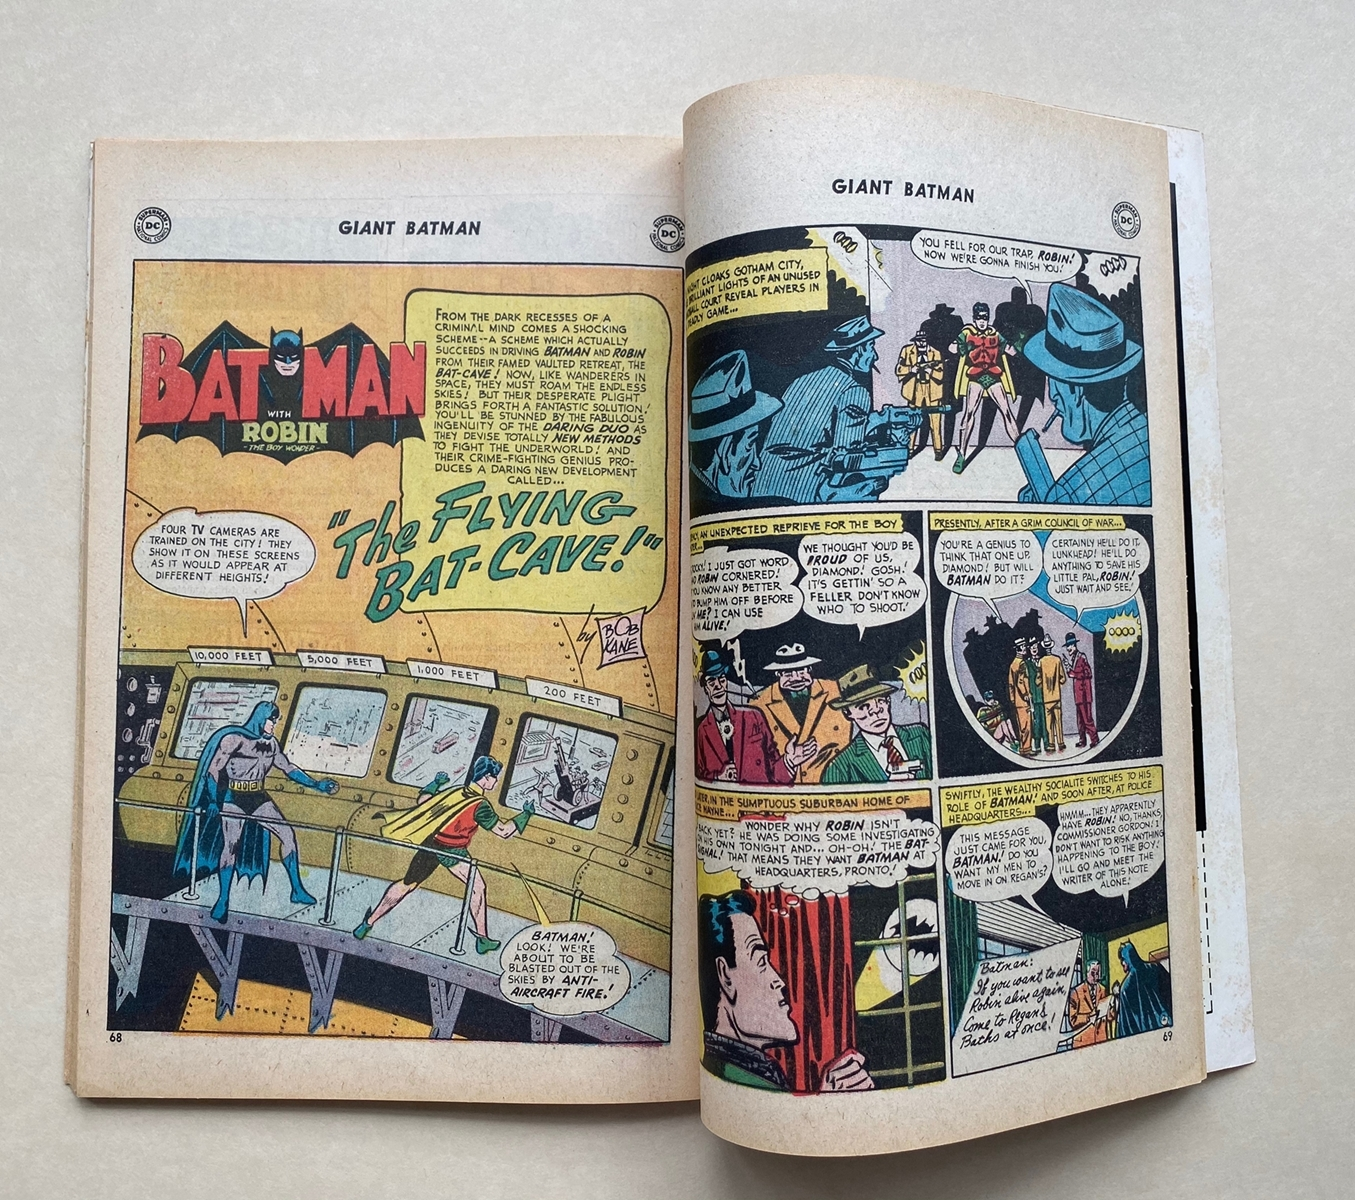 Lot 2190 - BATMAN #203 - (1968 - DC) FN/VFN (Cents Copy/Pence Stamp) - Giant-Size issue featuring reprinted